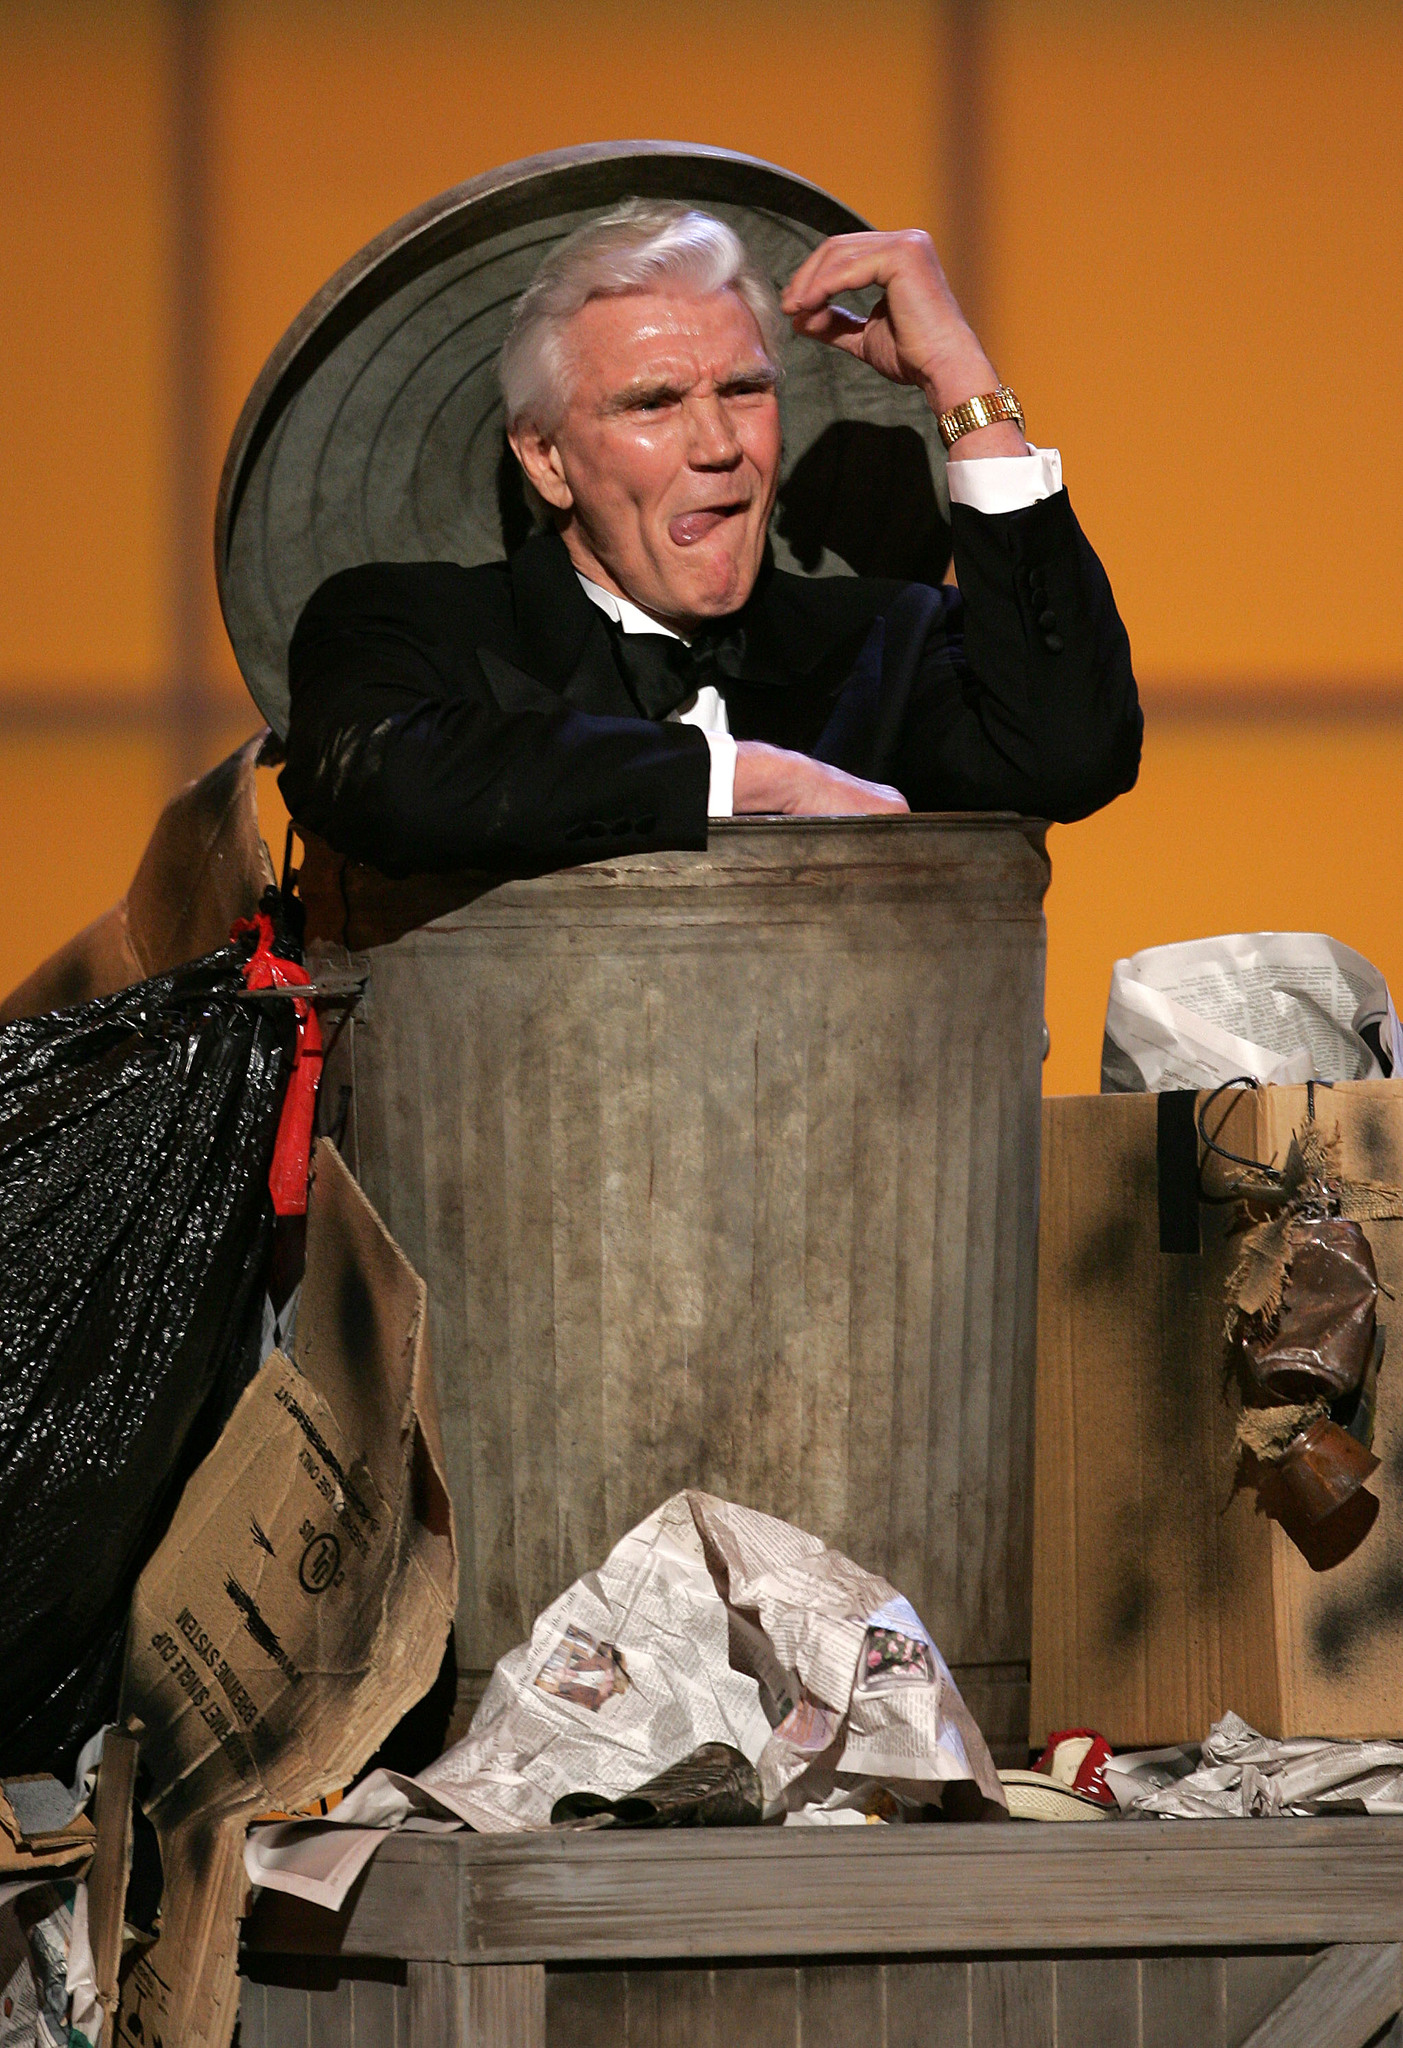 David Canary in The 32nd Annual Daytime Emmy Awards (2005)